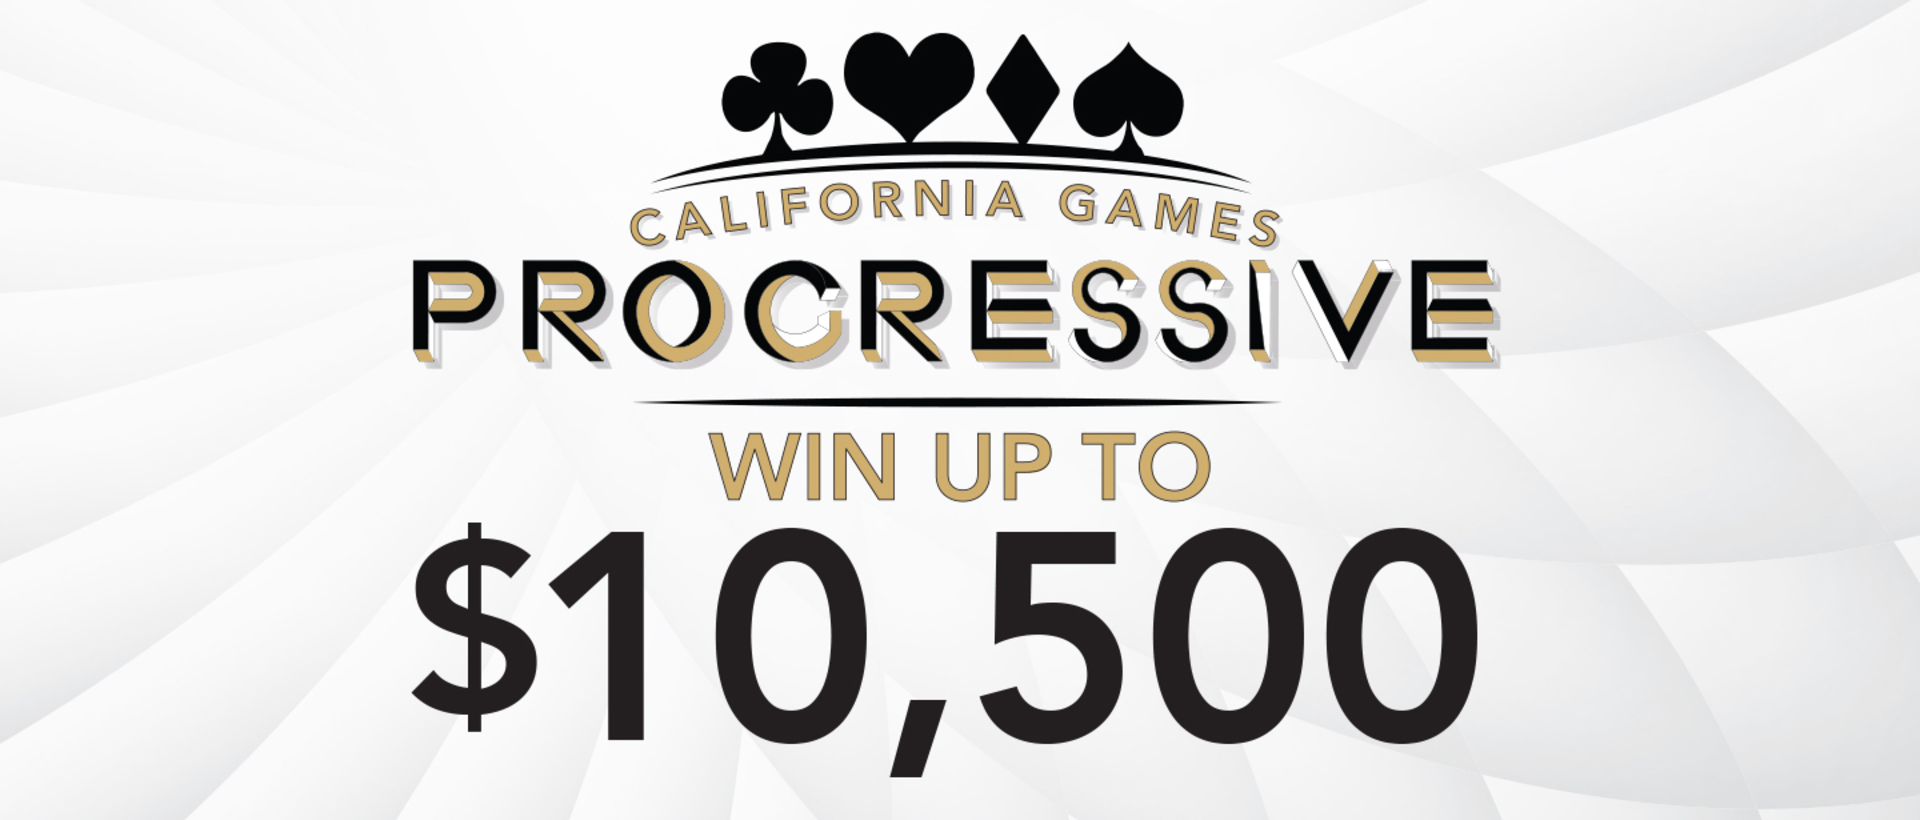 California Games Progressive